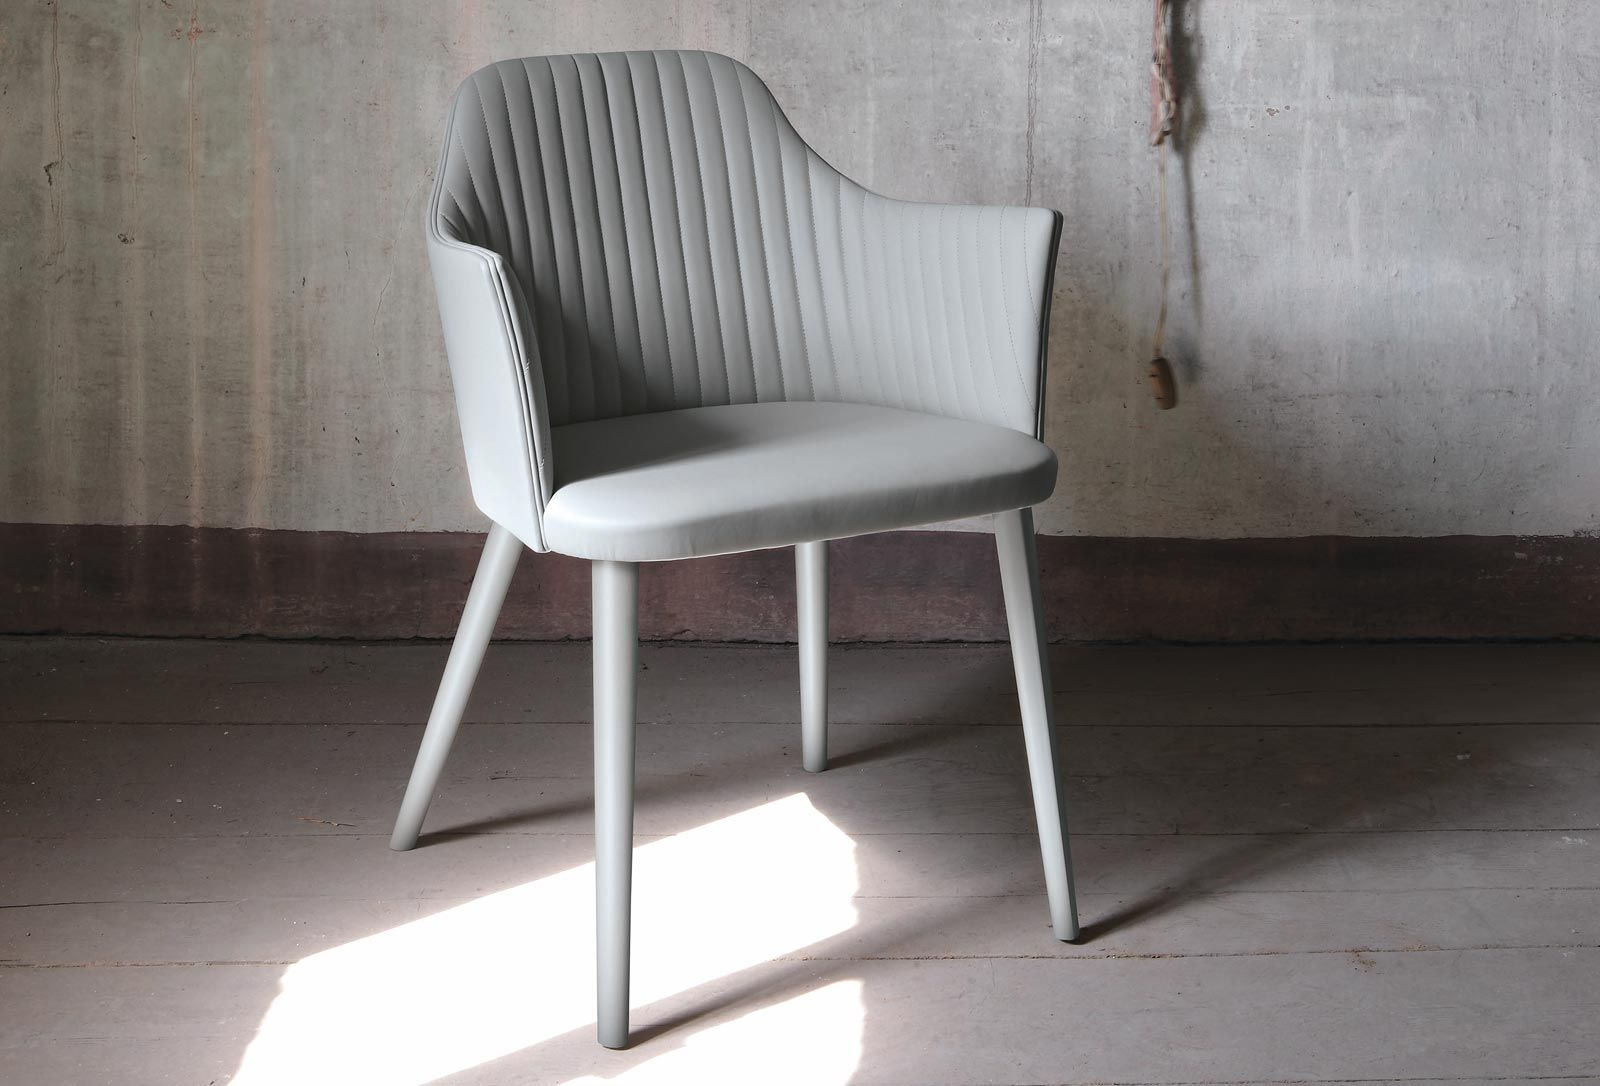 Contemporary fabric chairs -  Contemporary Chair Fabric Wooden Leather Break By Enzo Berti Bross Italia